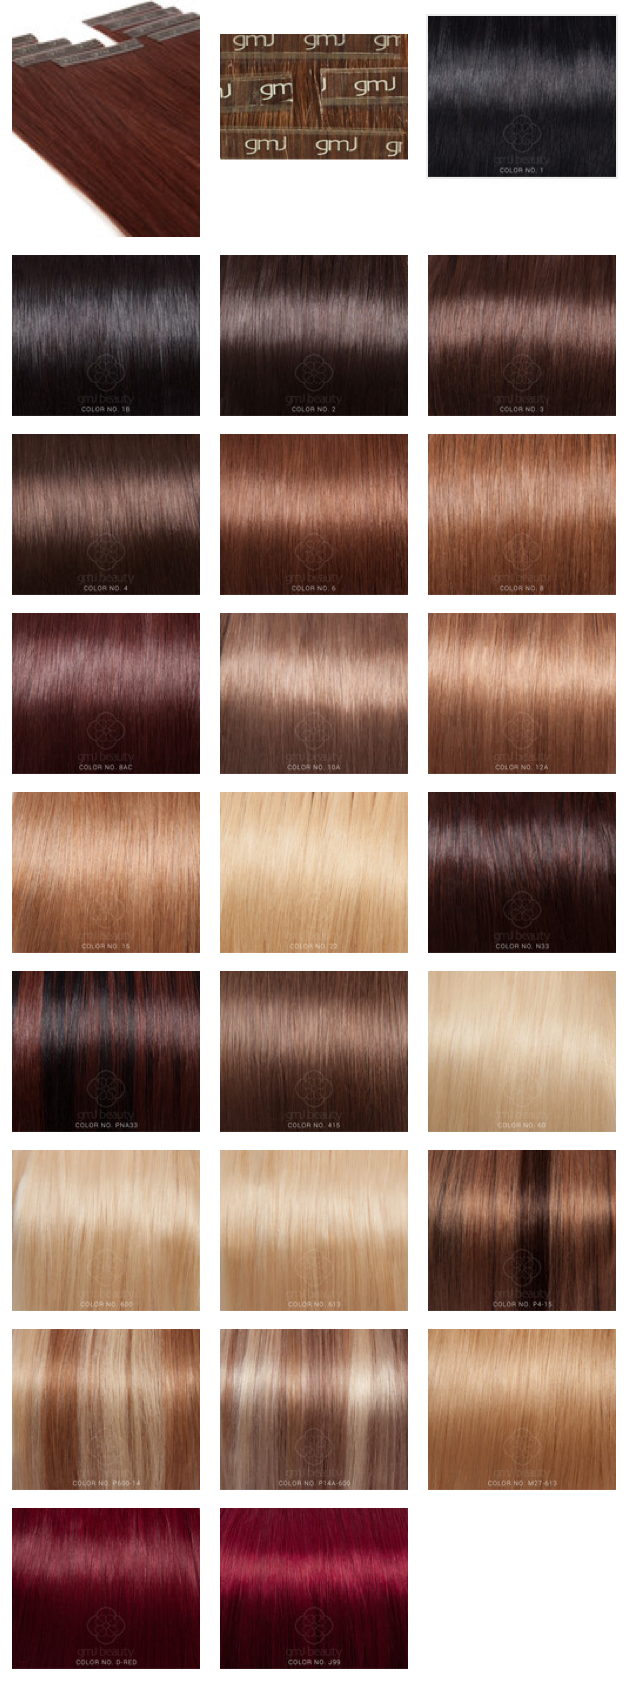 Vsh tape extensions remy waterproof tearsheet vsh tape extensions remy waterproof geenschuldenfo Choice Image